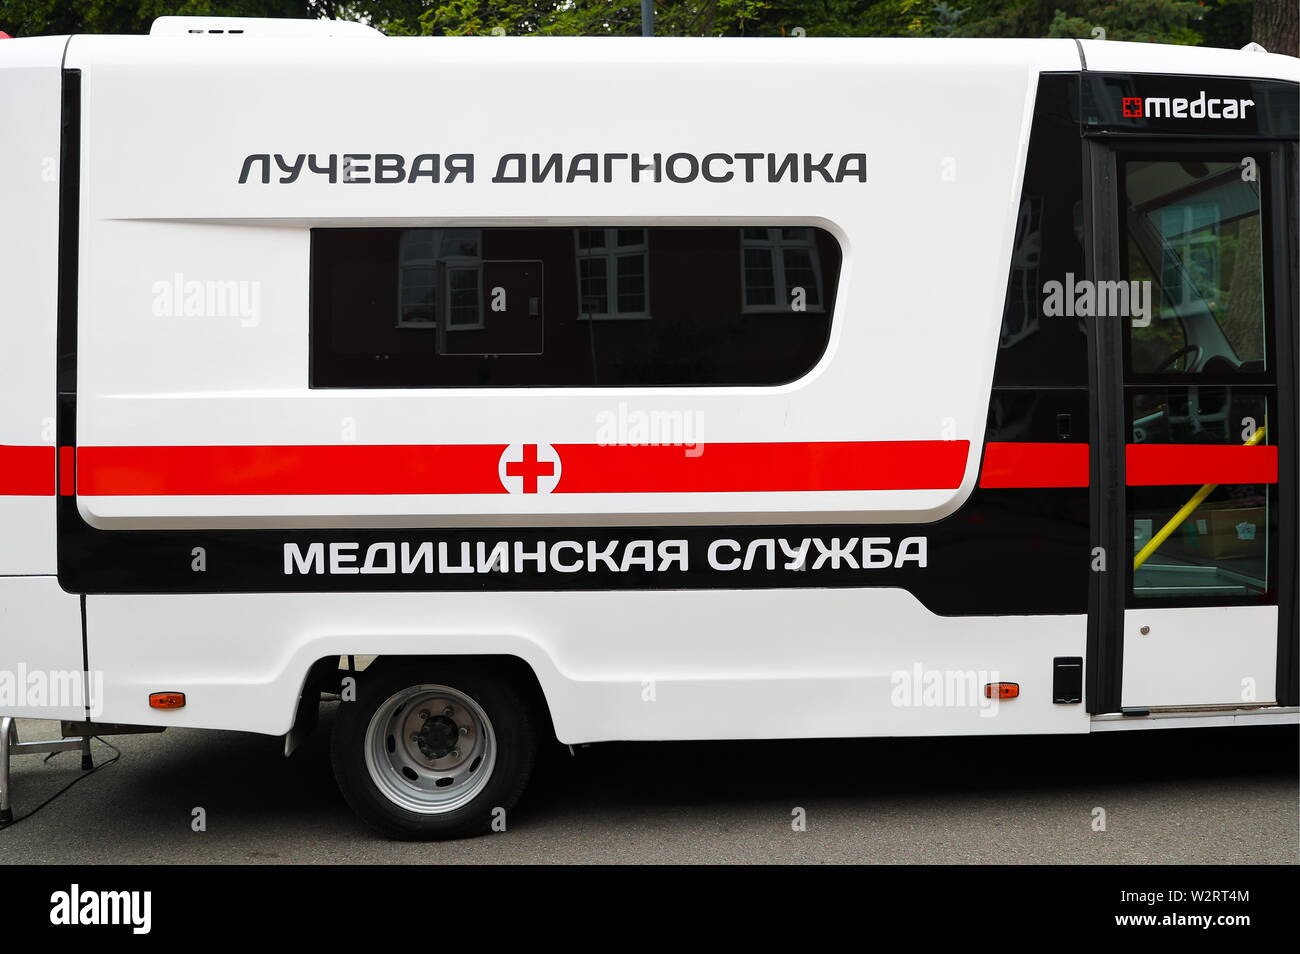 Mobile Medical Unit Stock Photos & Mobile Medical Unit Stock